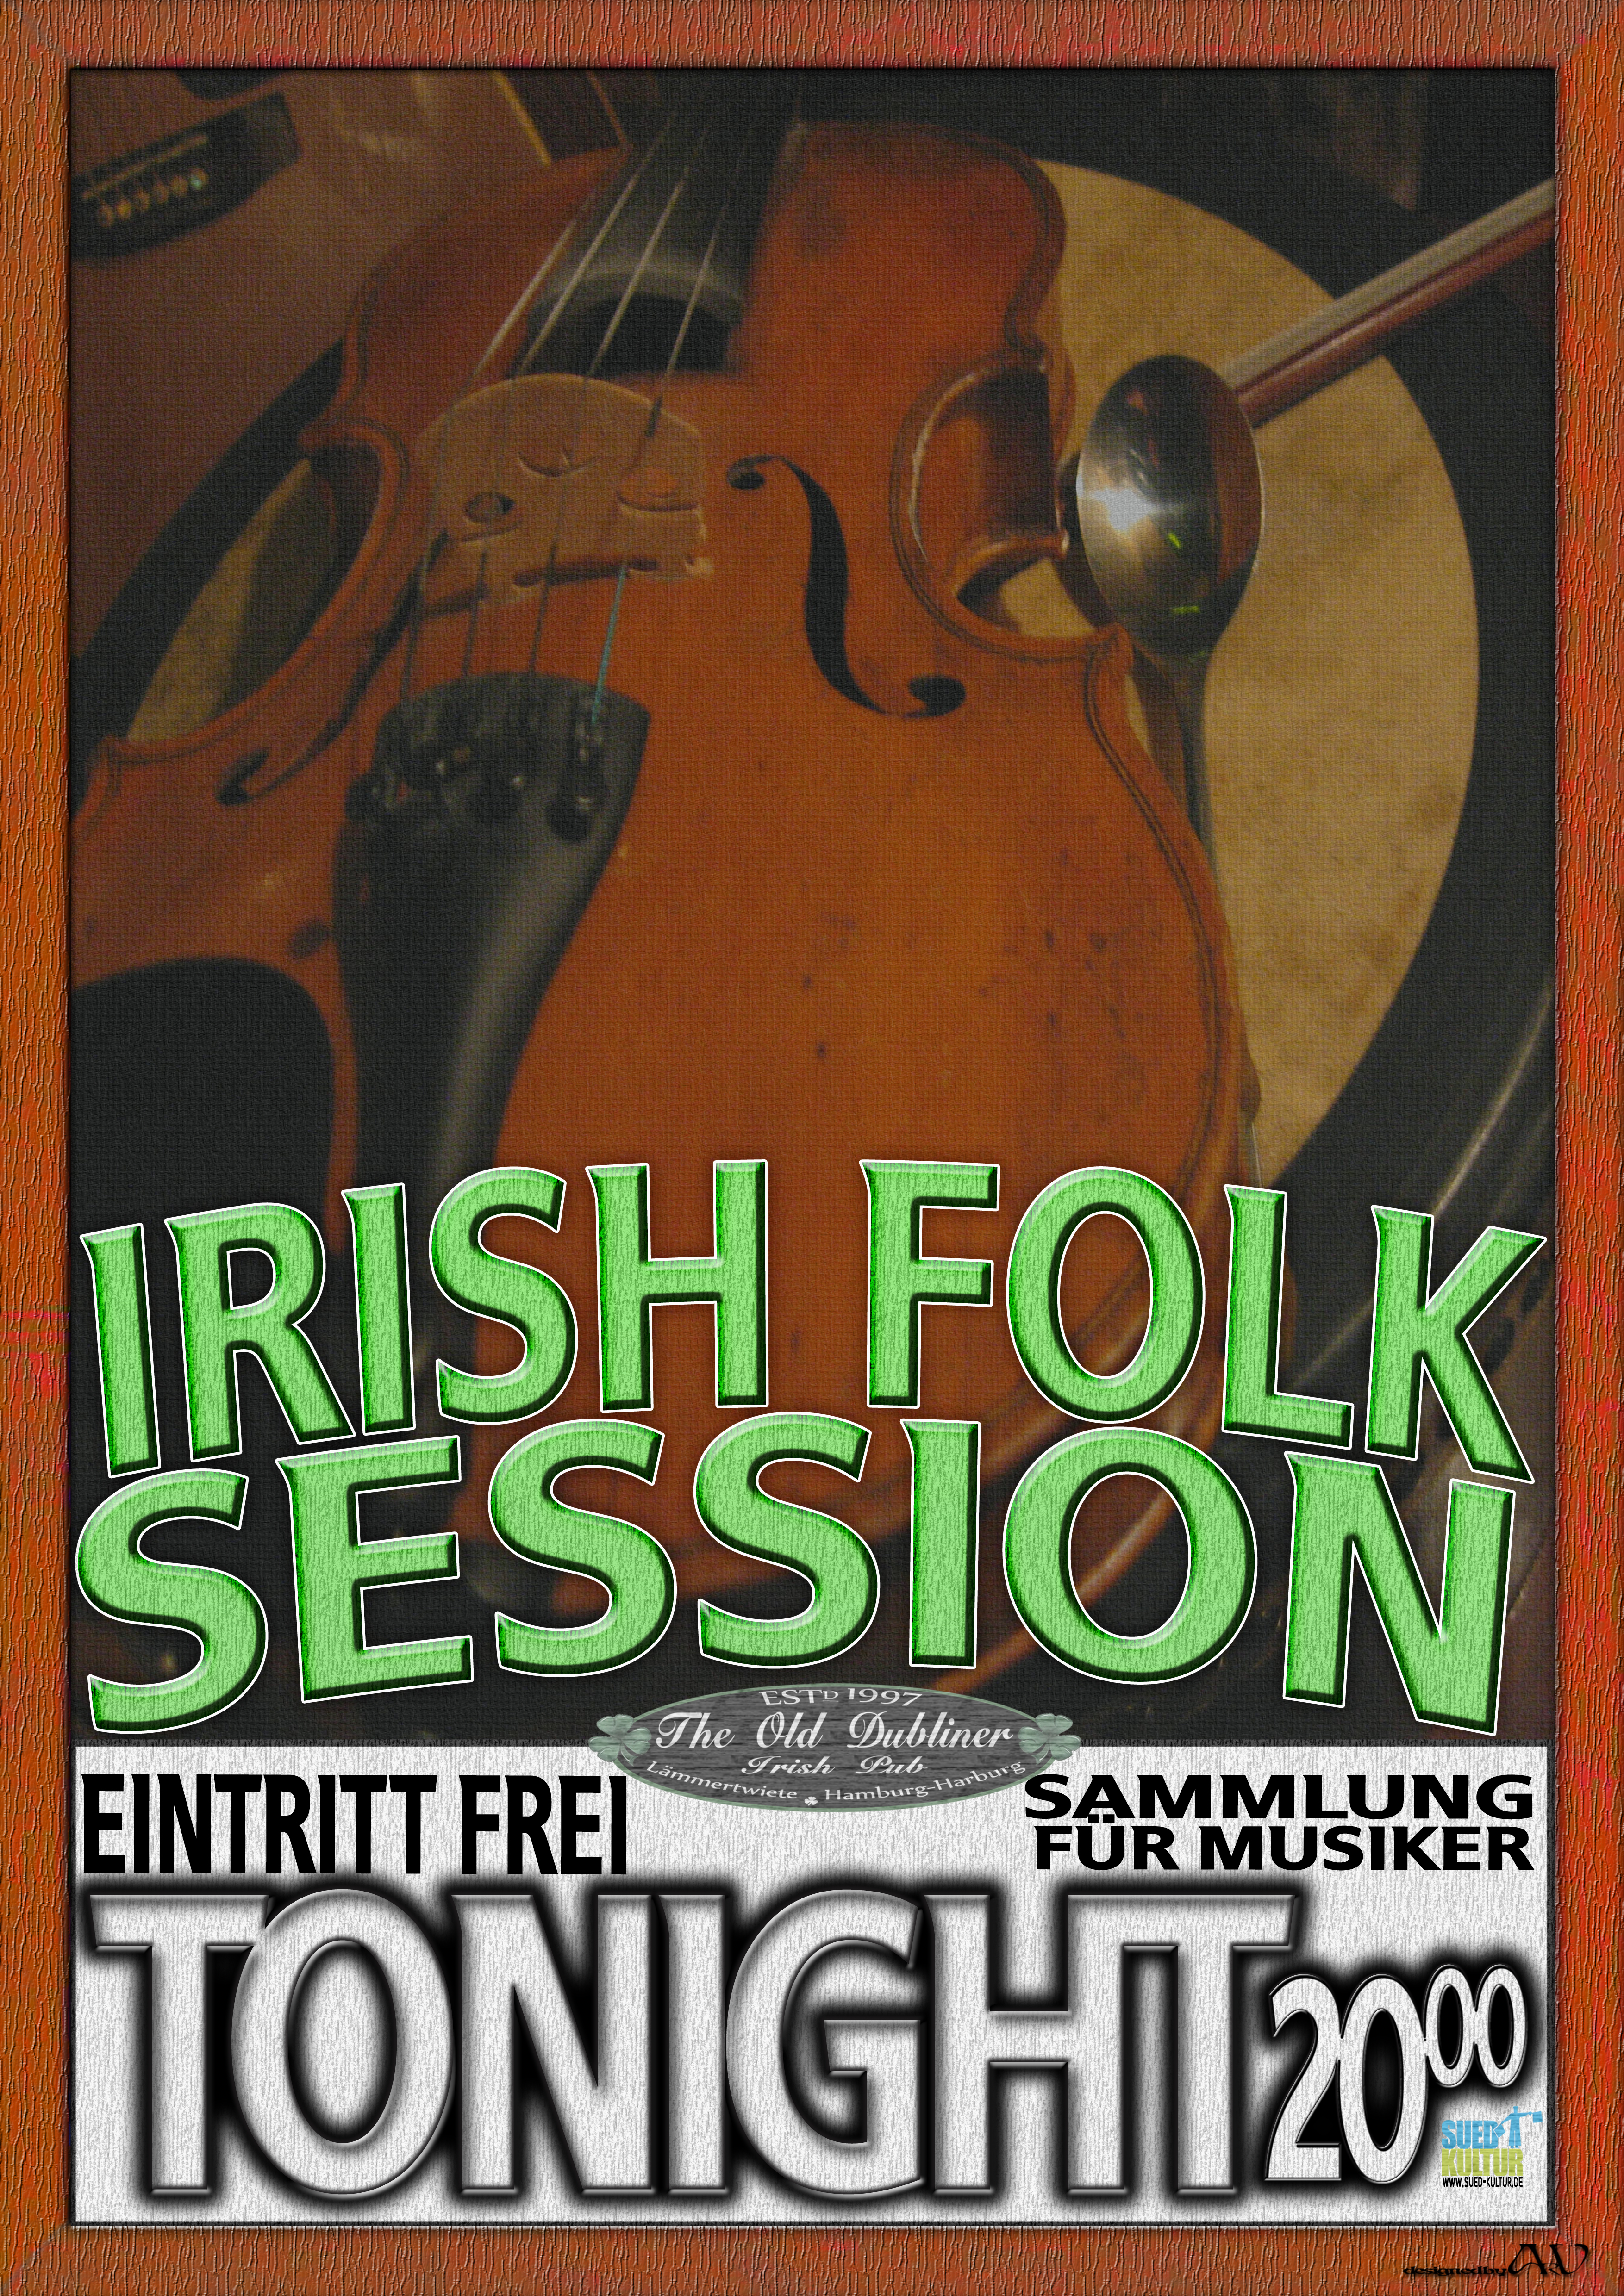 IrishFolkSession Irish Folk Session